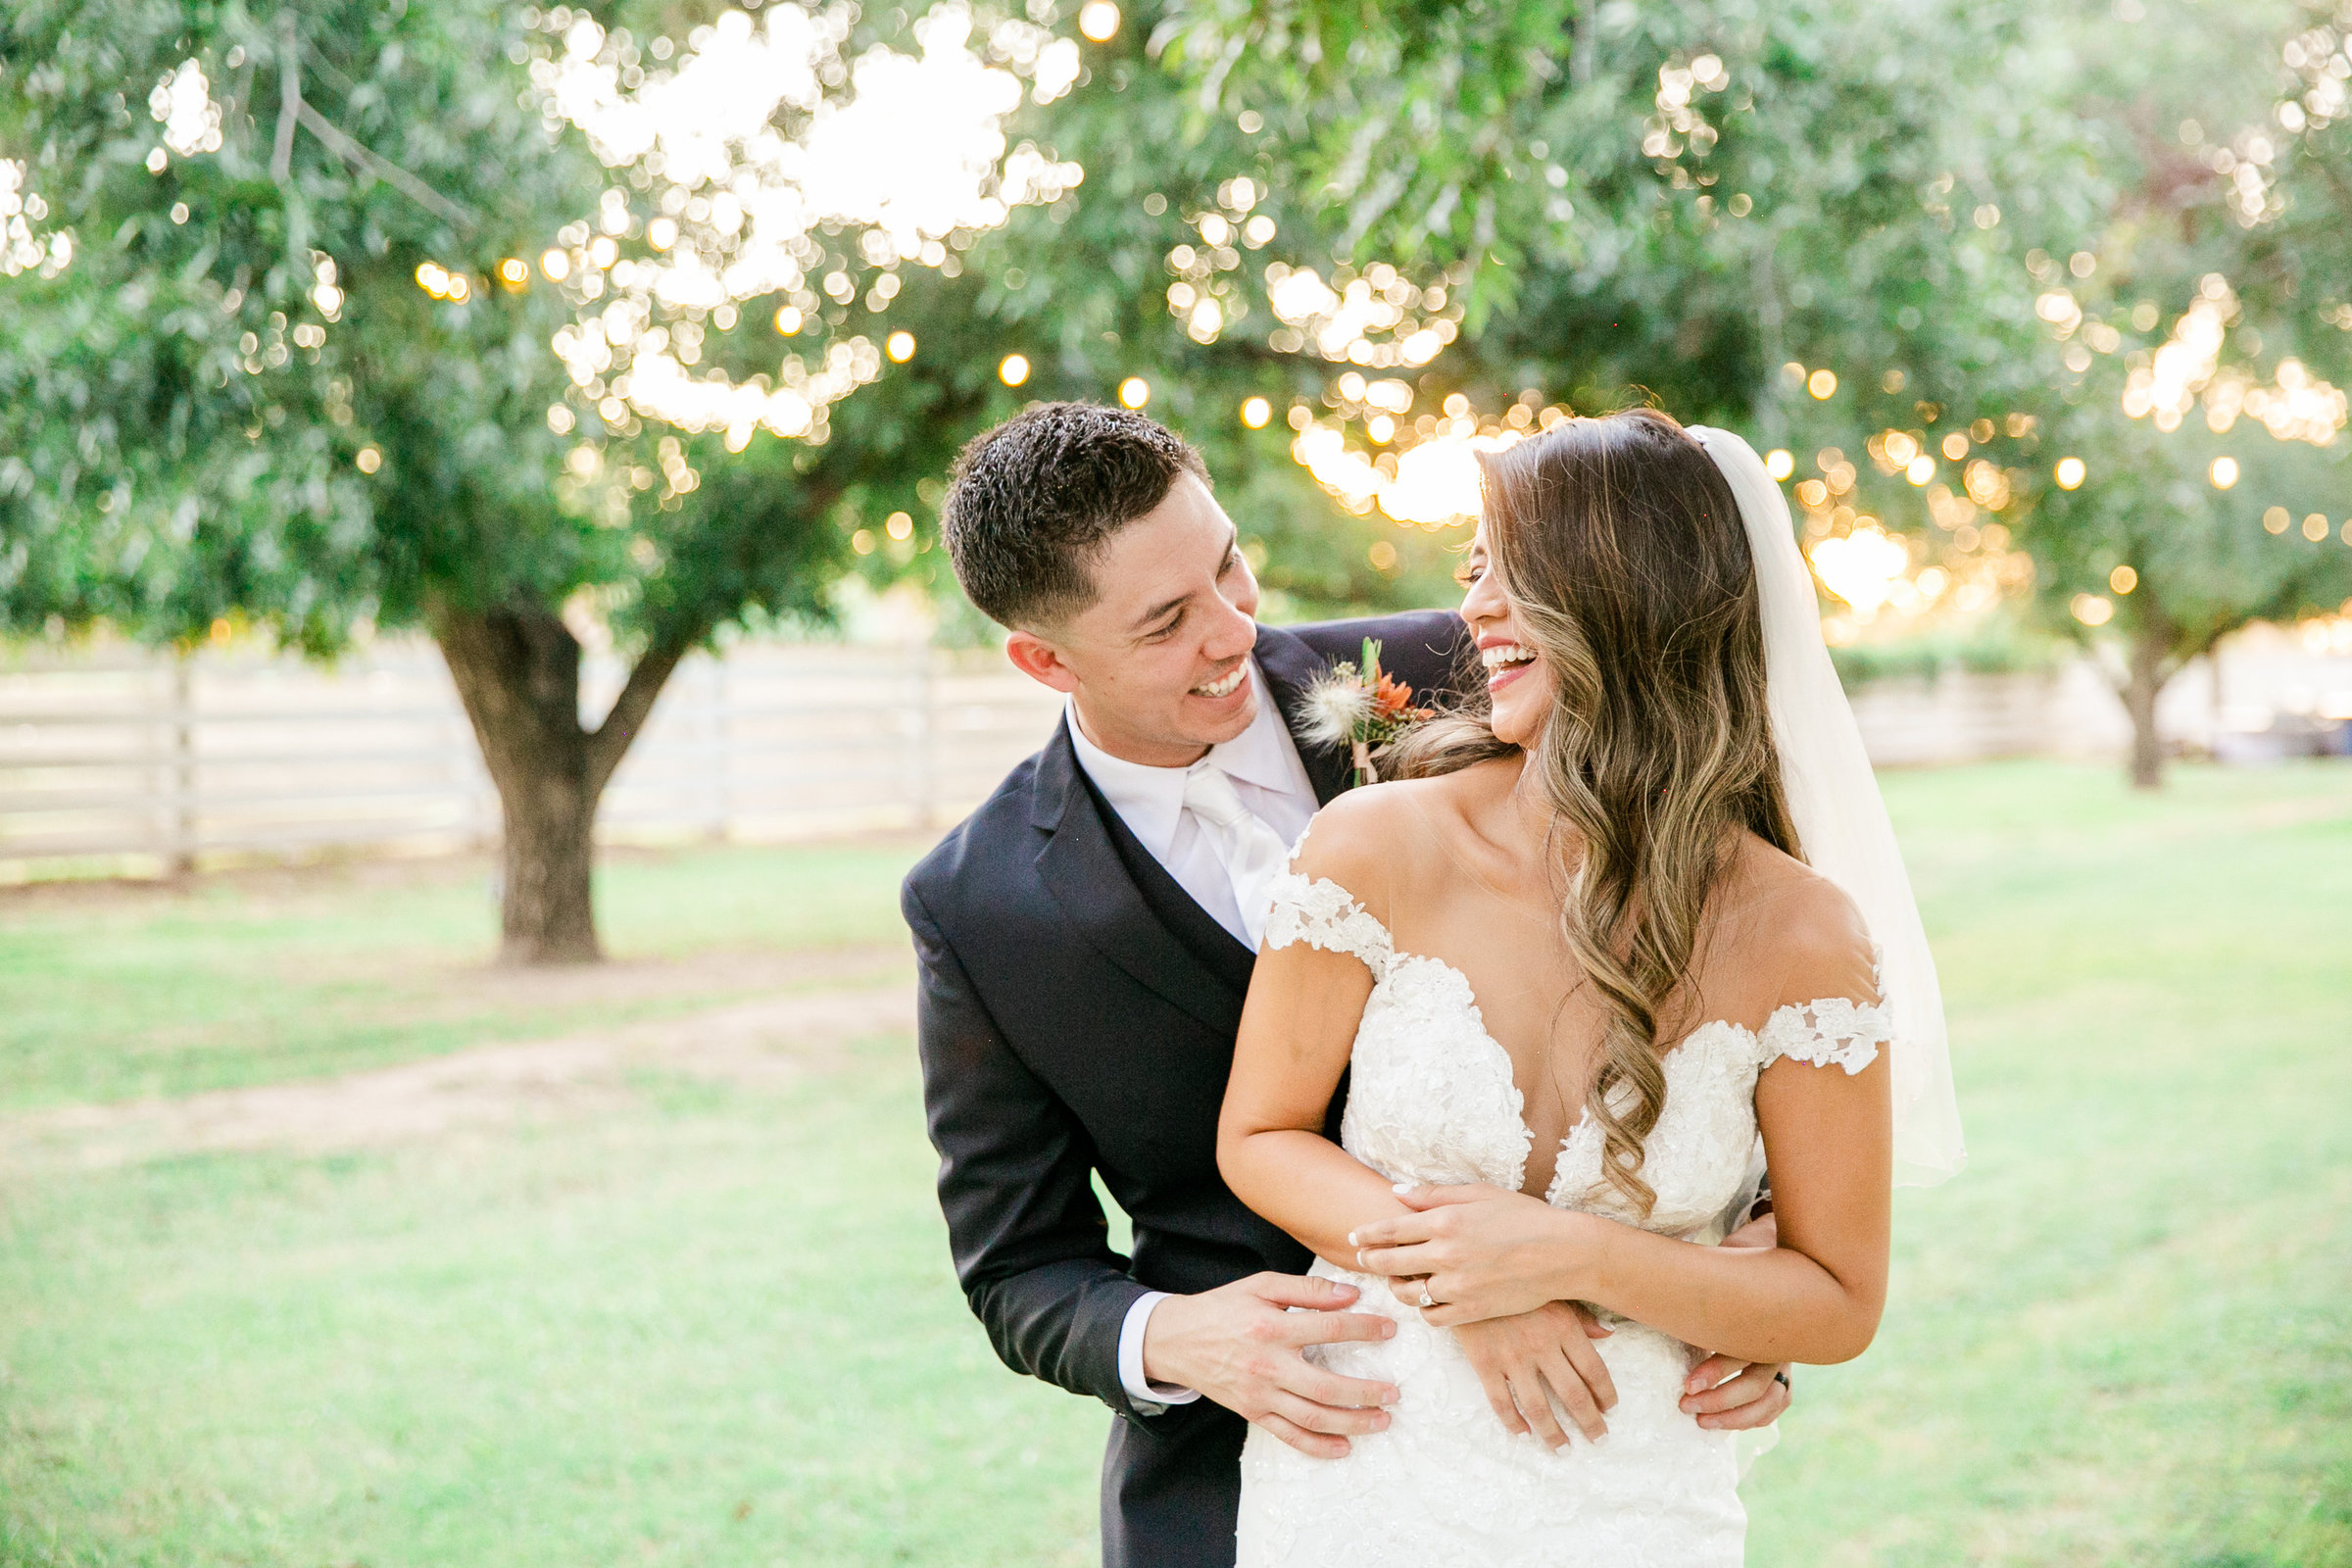 Karlie Colleen Photography - Phoenix Arizona - Farm At South Mountain Venue - Vanessa & Robert-639